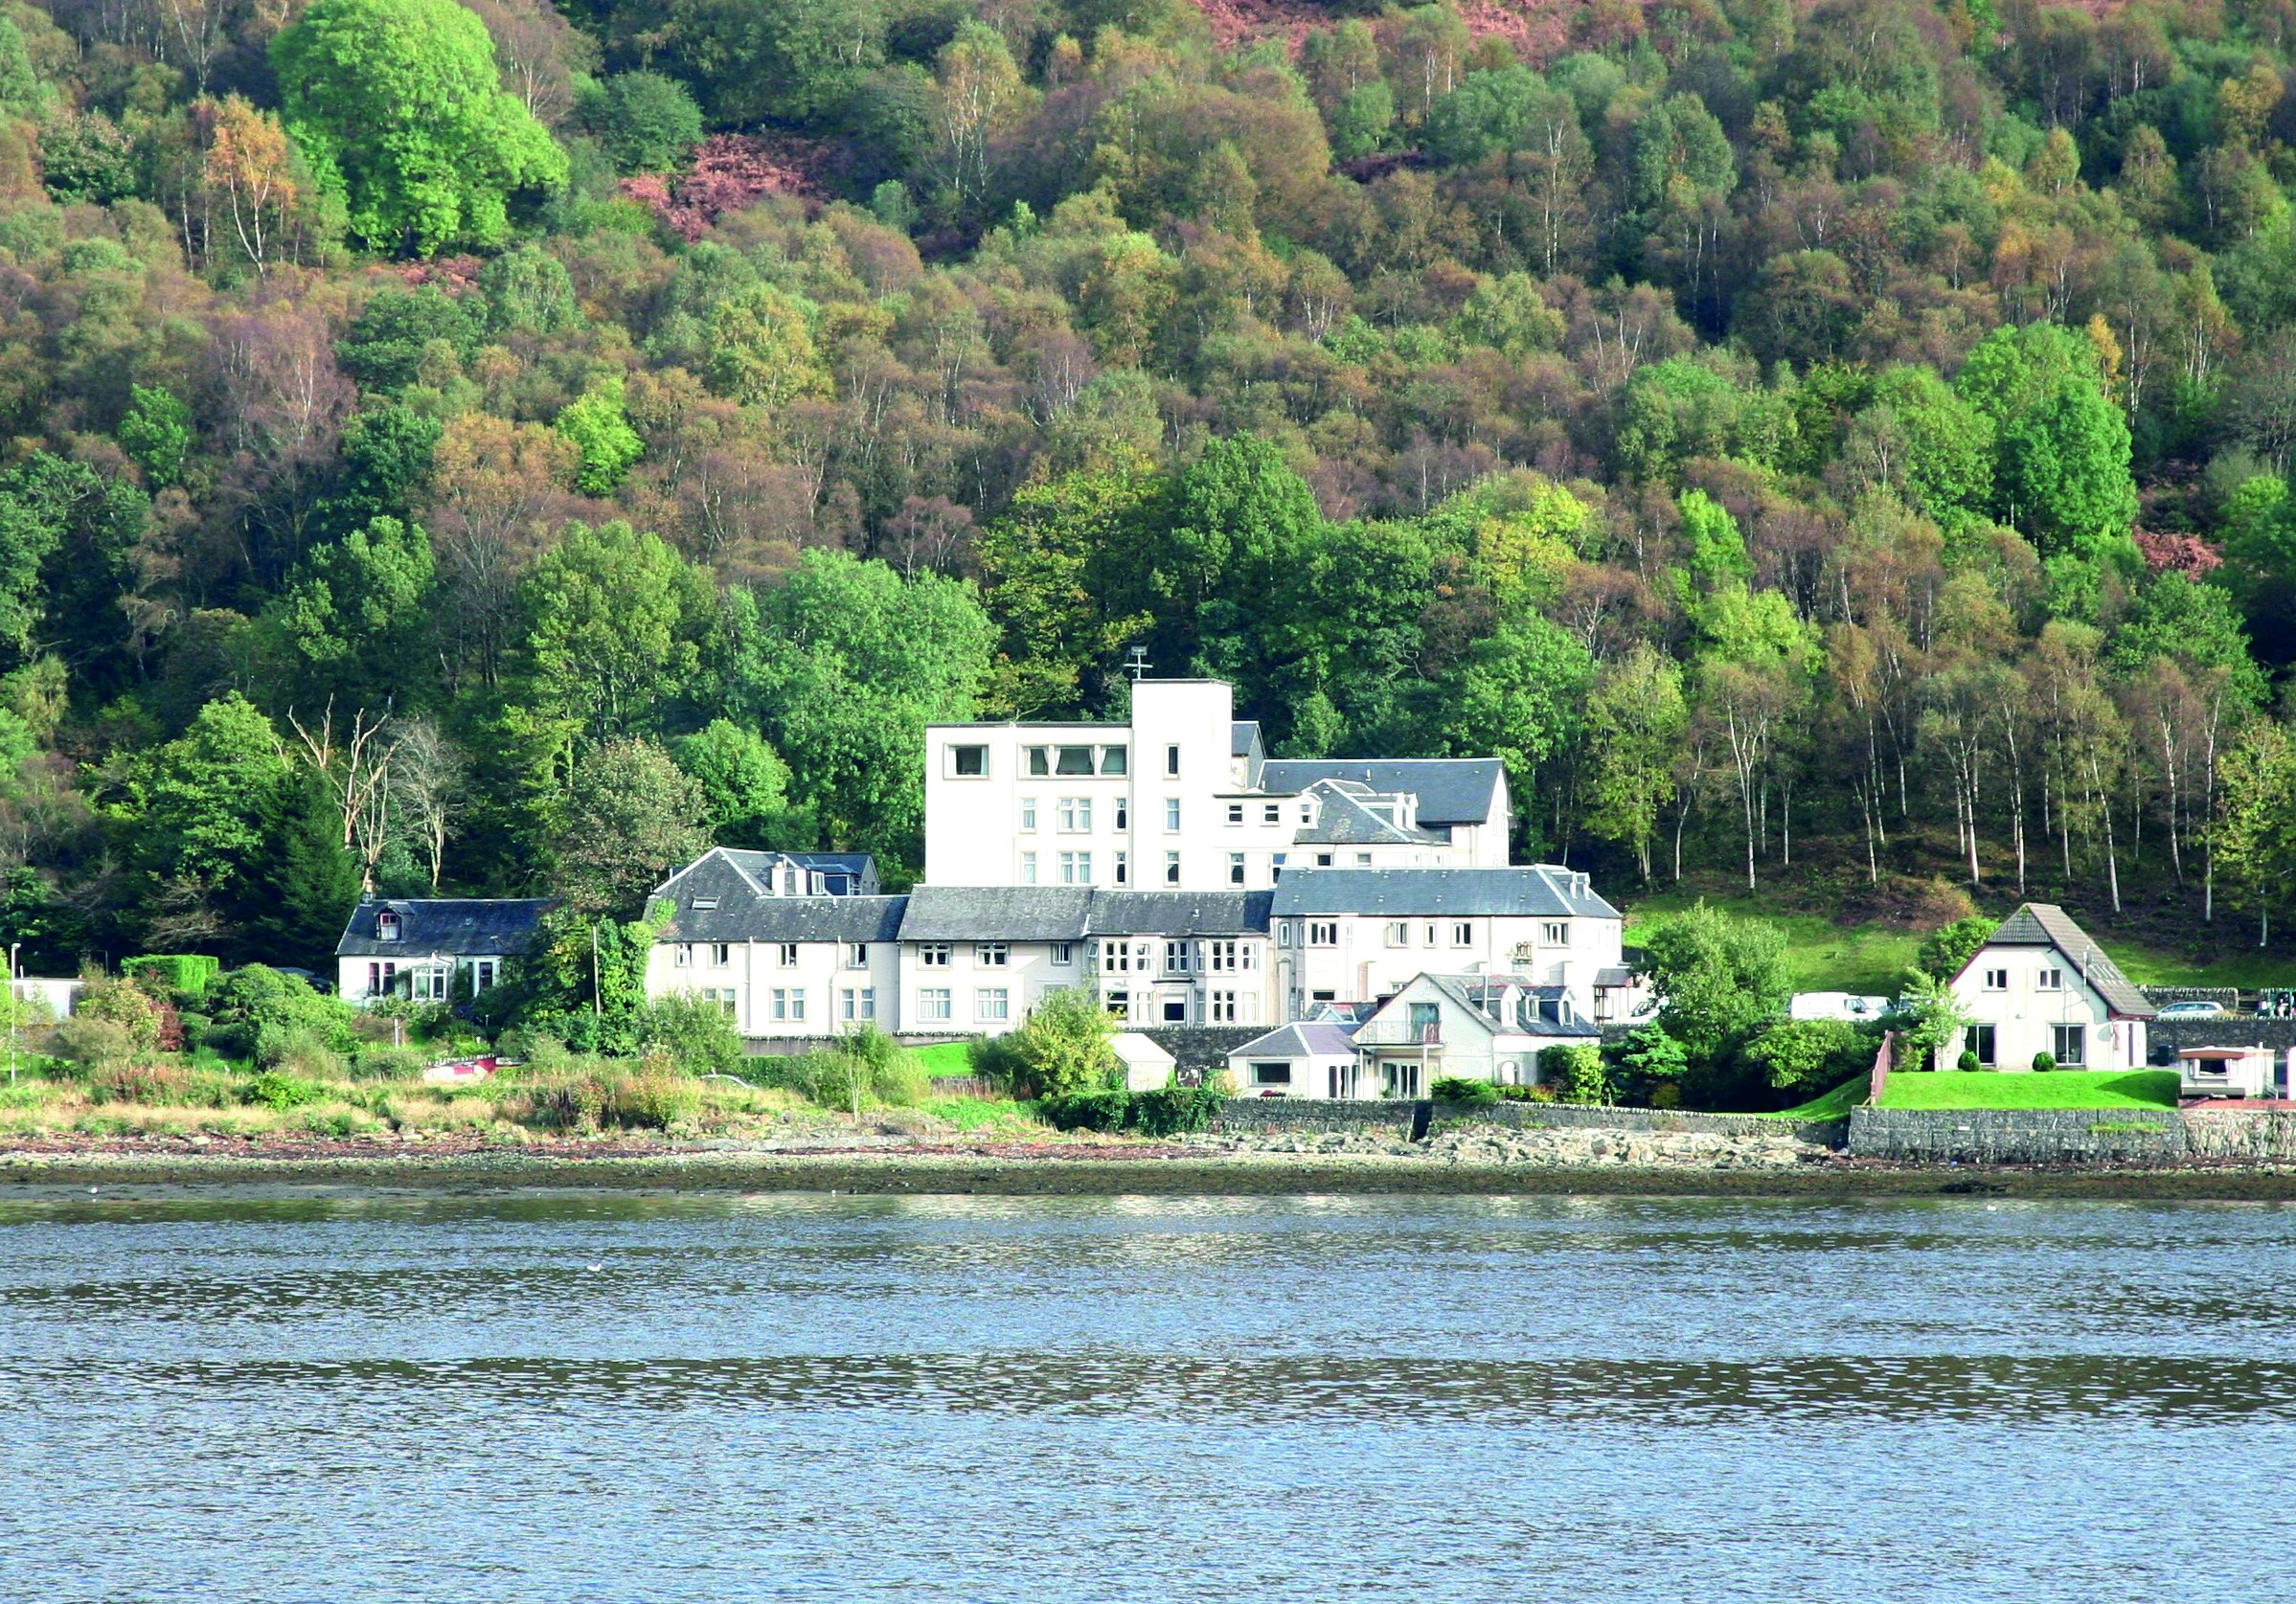 Loch-side hotel changes hands